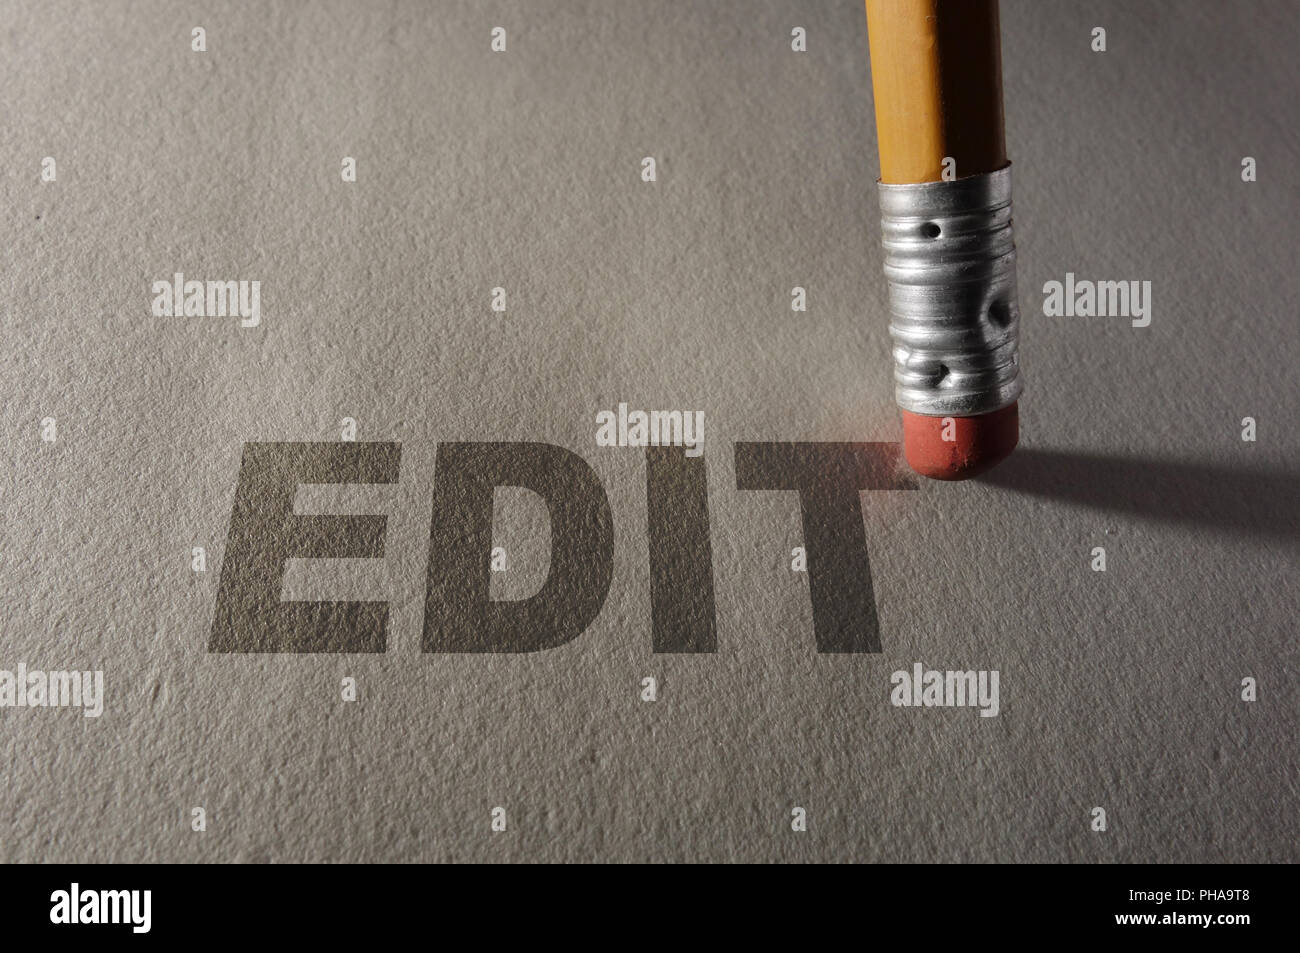 Editing a paper - Stock Image